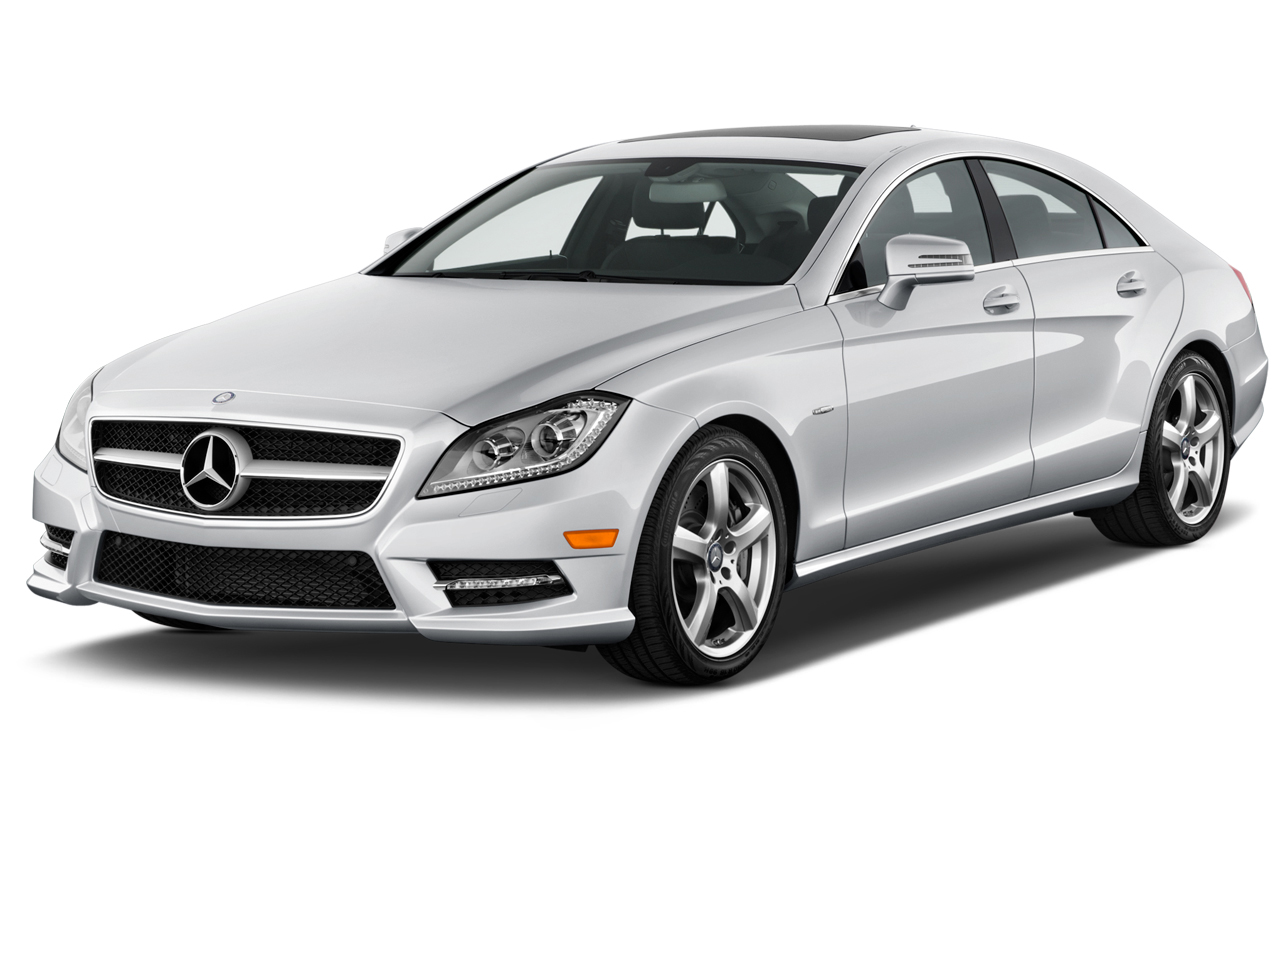 2012 Mercedes-Benz CLS550 Models Recalled For Hood Latch Issue